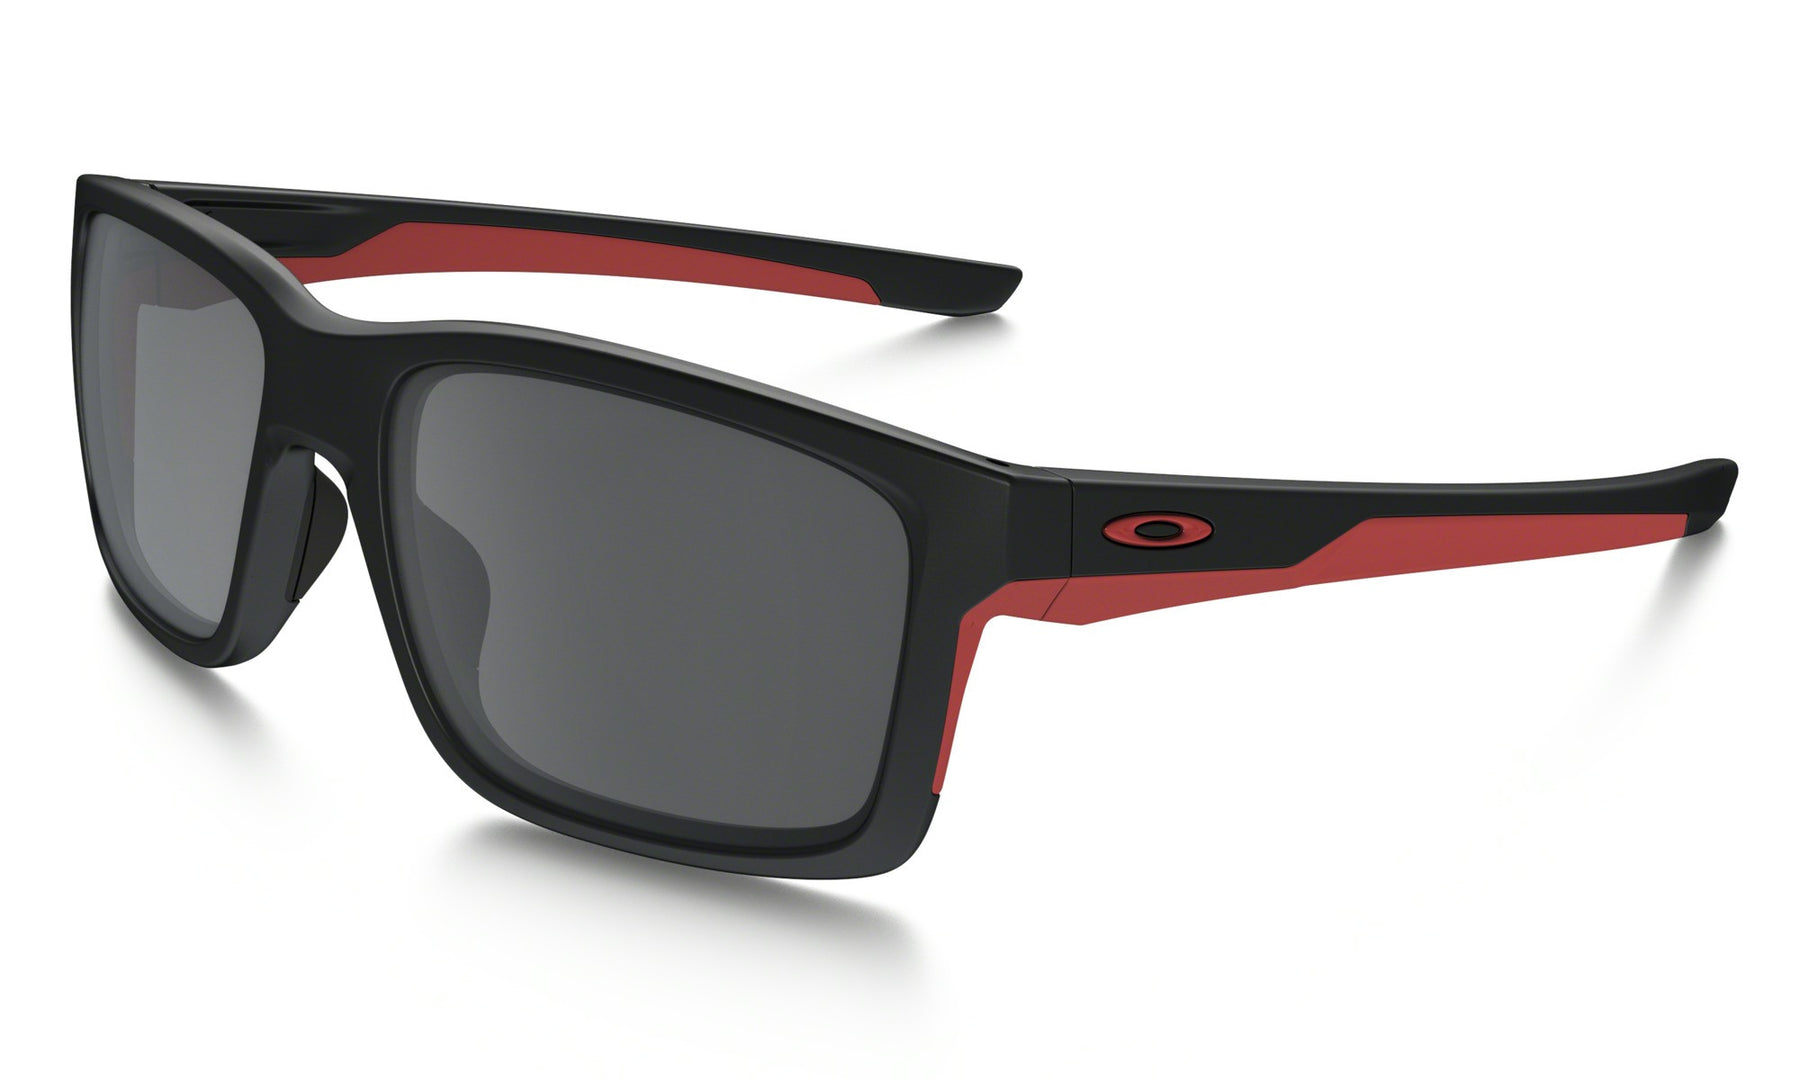 Oakley Sunglasses at 88 Gear Sports